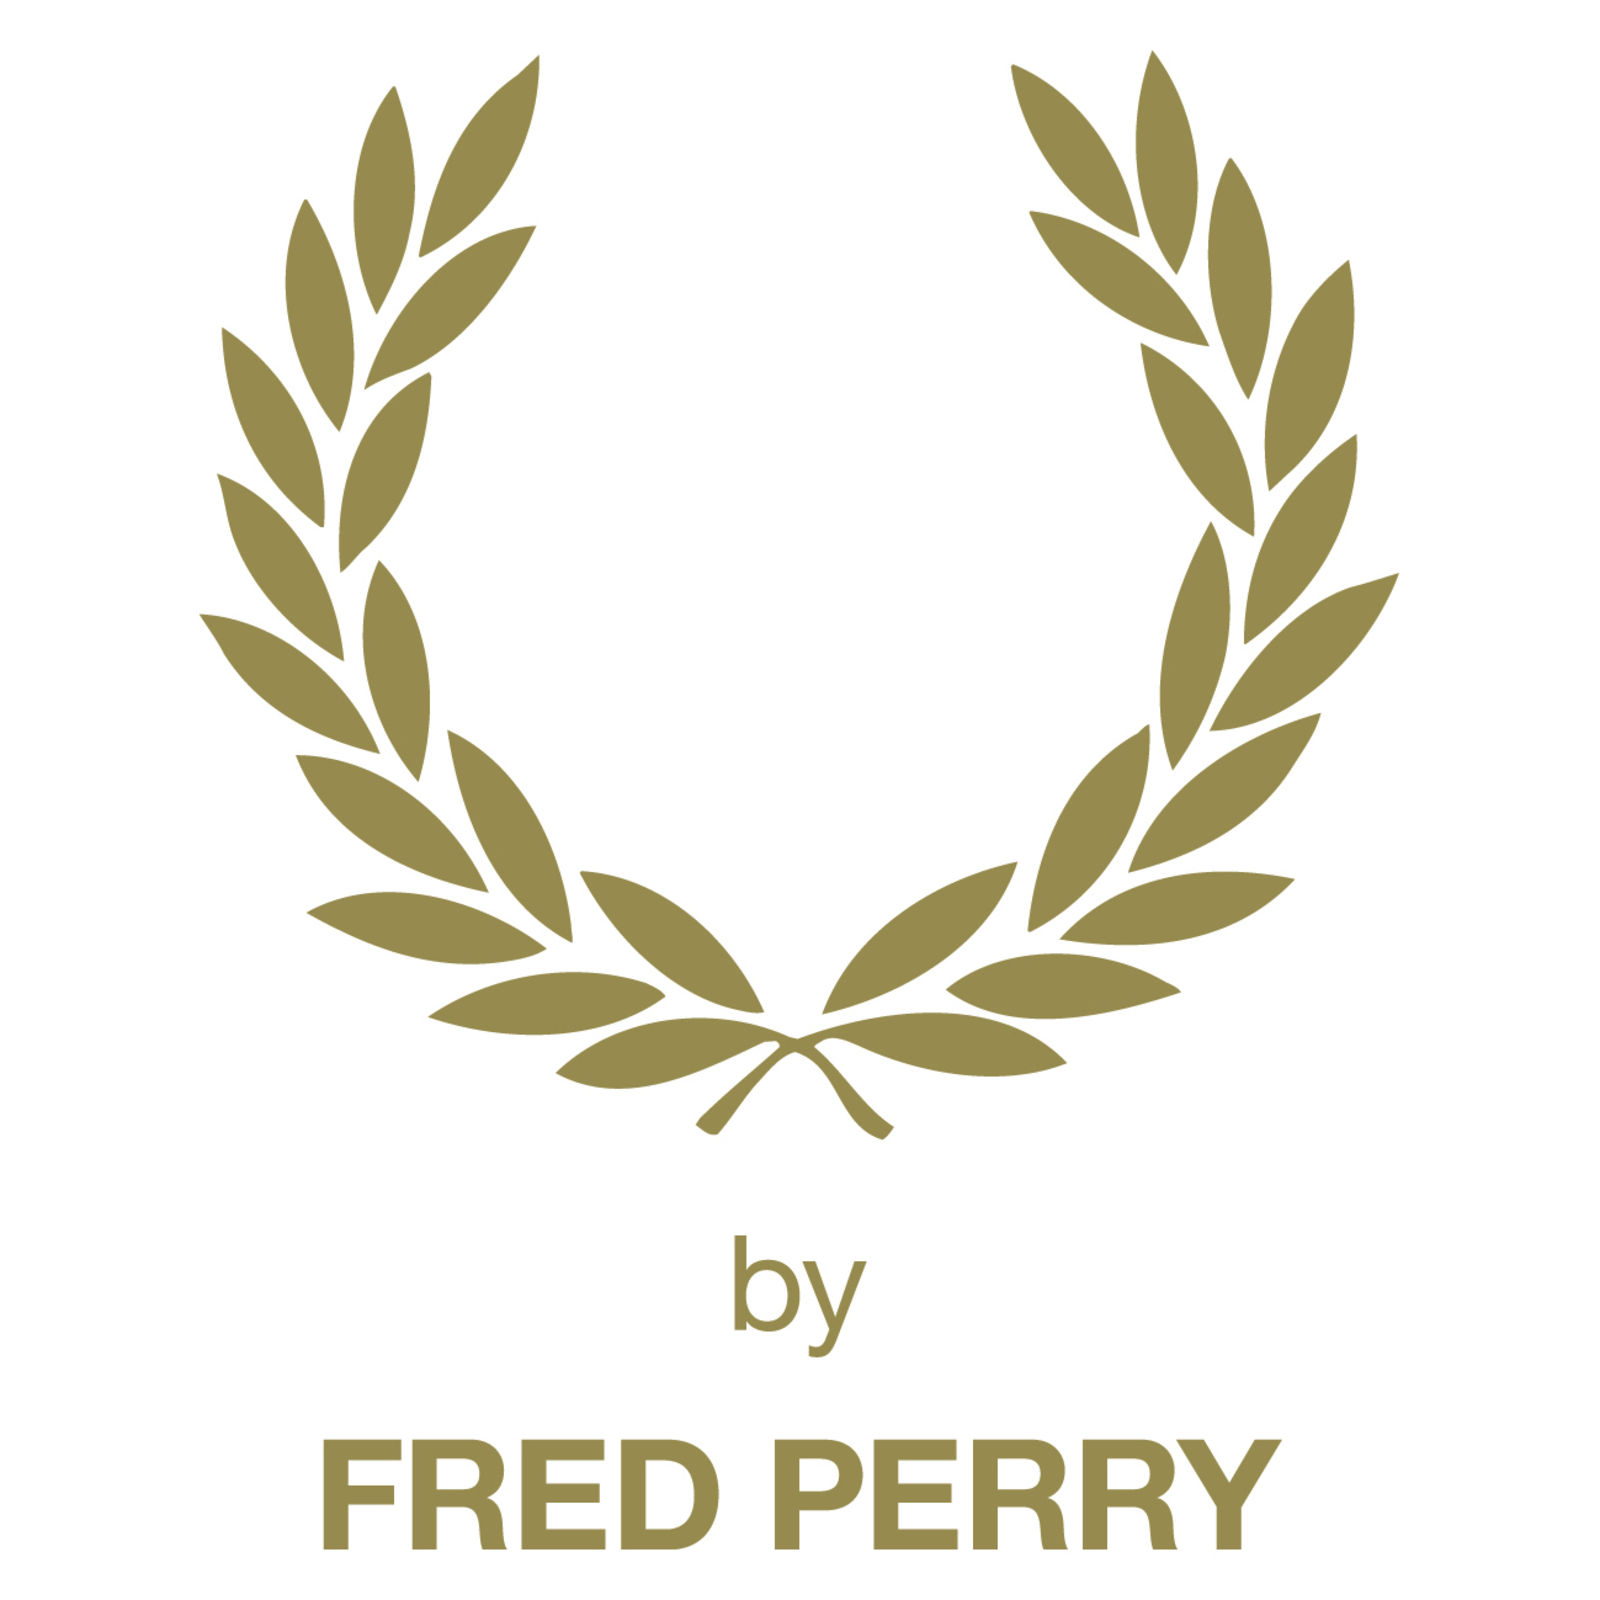 FRED PERRY Laurel Wreath | Re-Issues (Image 1)